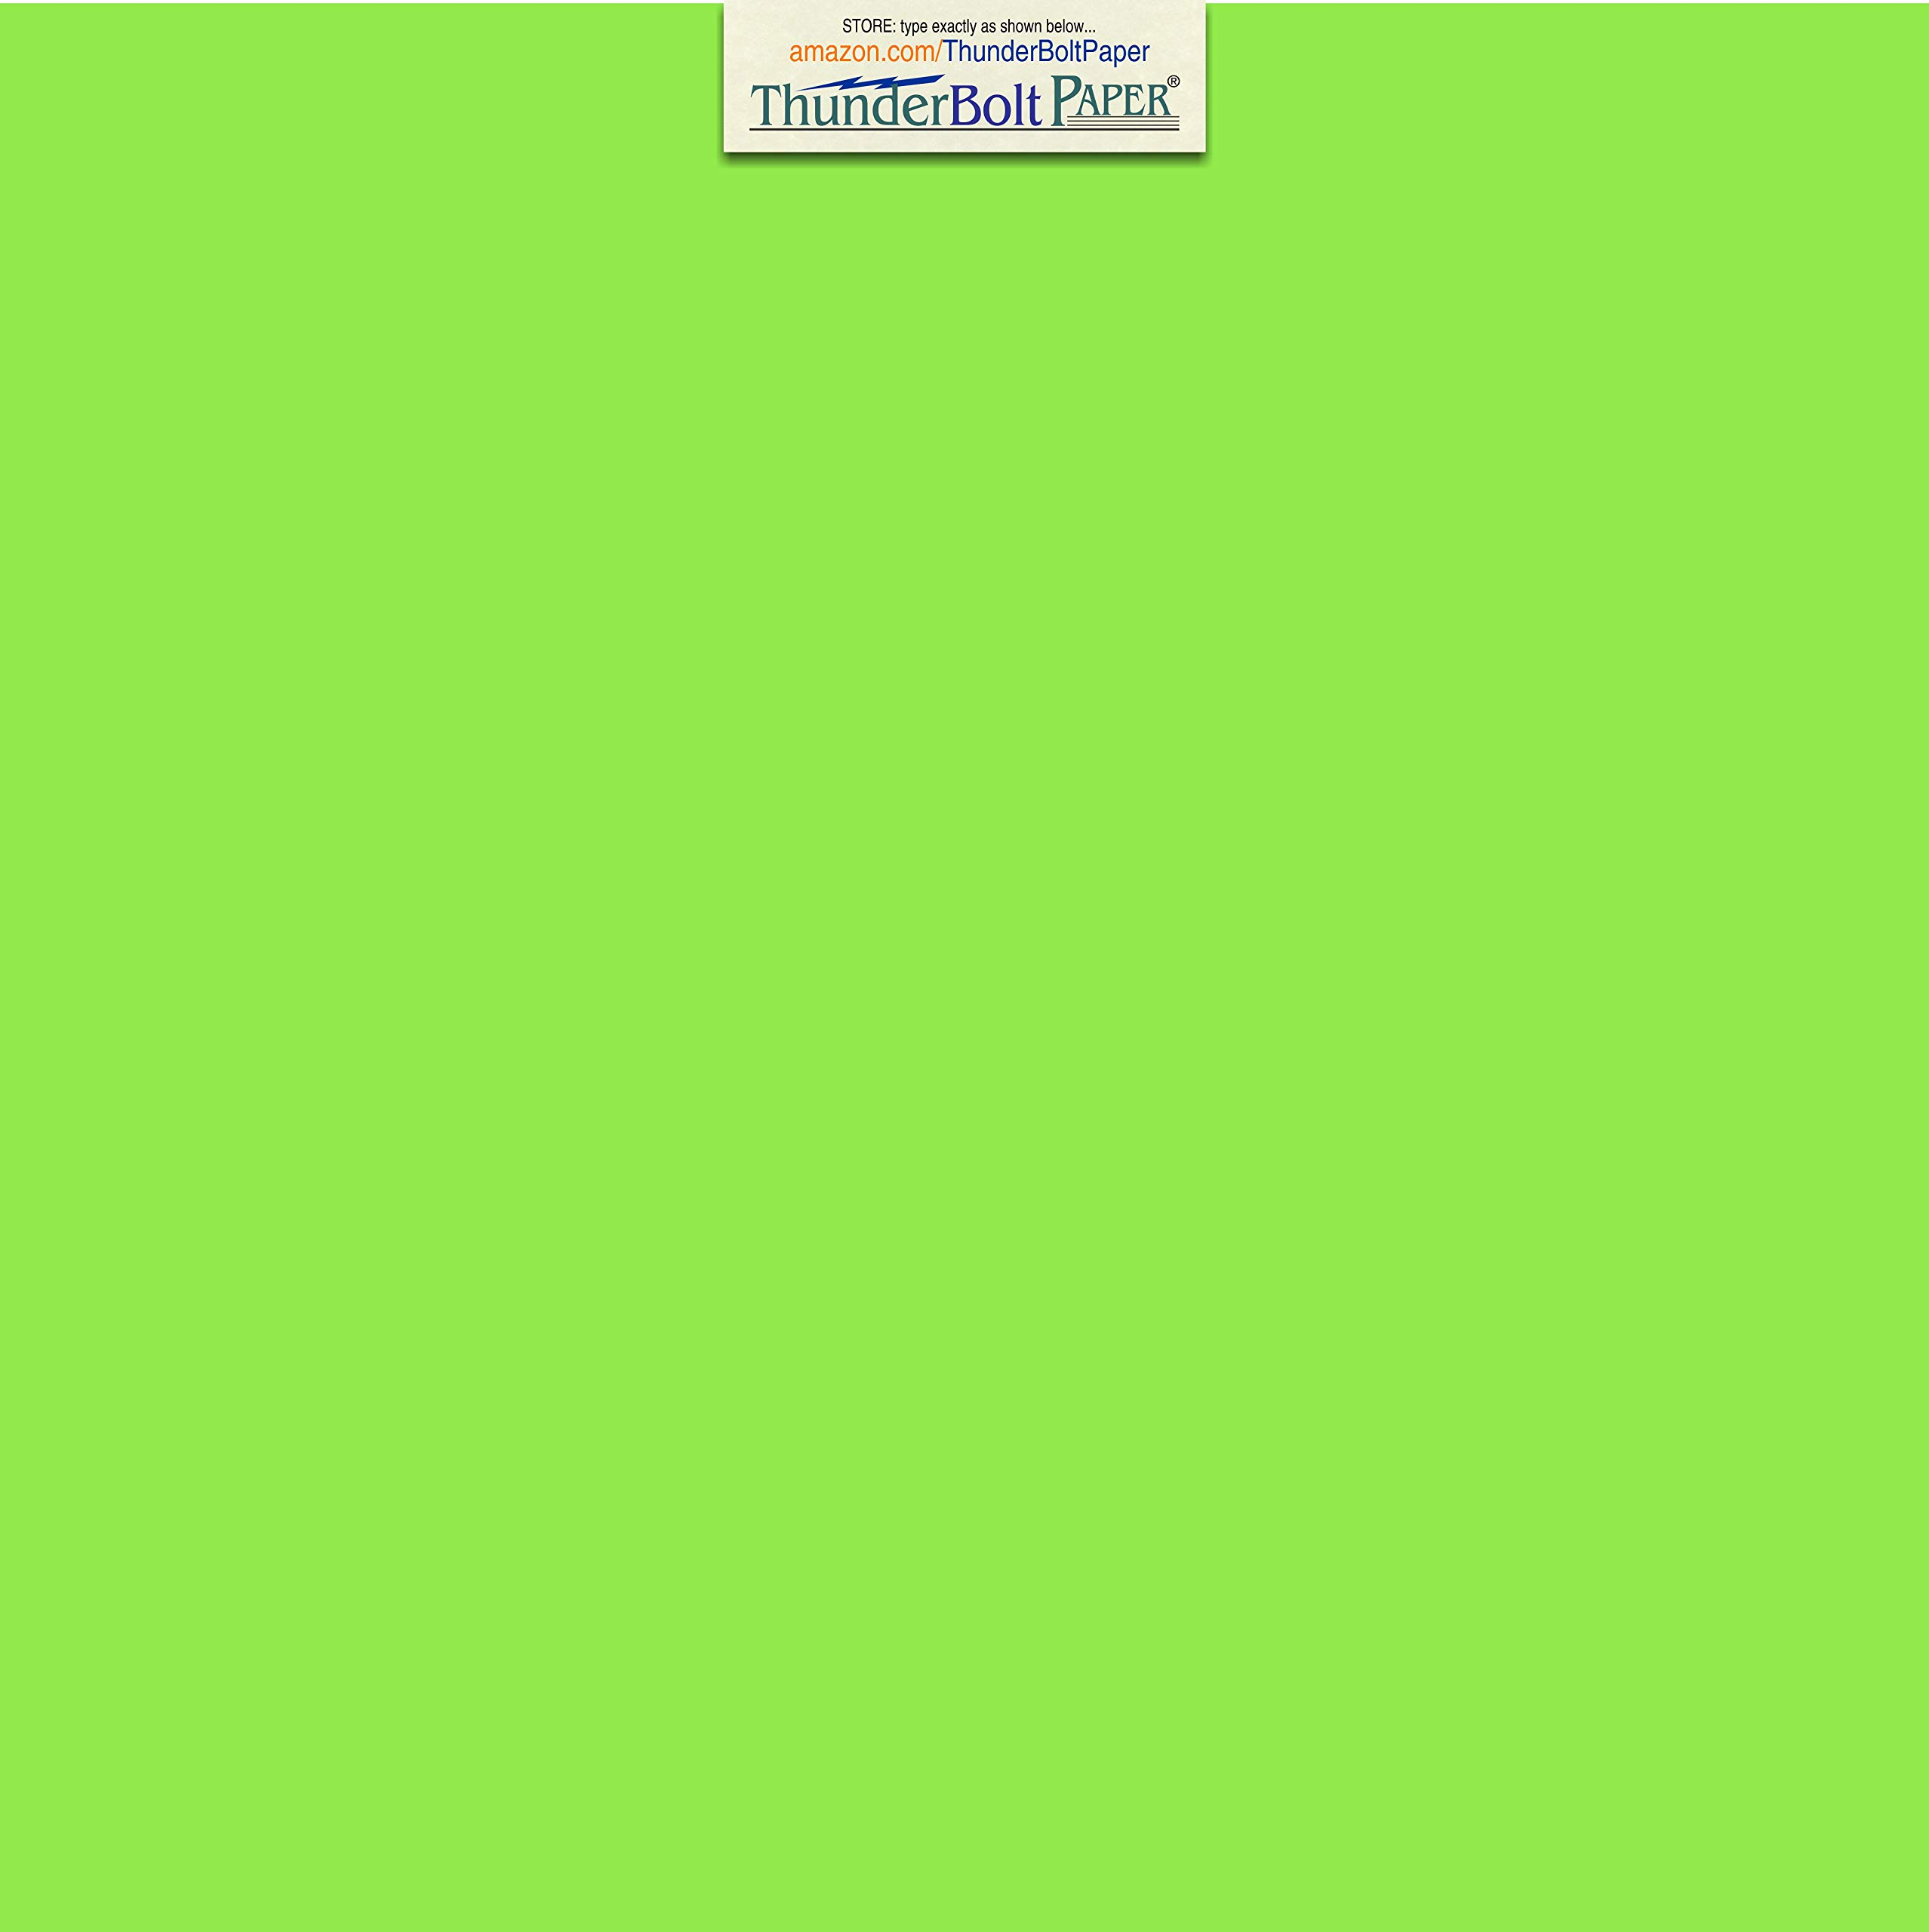 150 Bright Mint Green 65lb Cover Card Paper - 12 X 12 Inches Scrapbook Album Cover Size - 65 lb/Pound Light Weight Cardstock - Quality Printable Smooth Surface for Bright Colorful Results